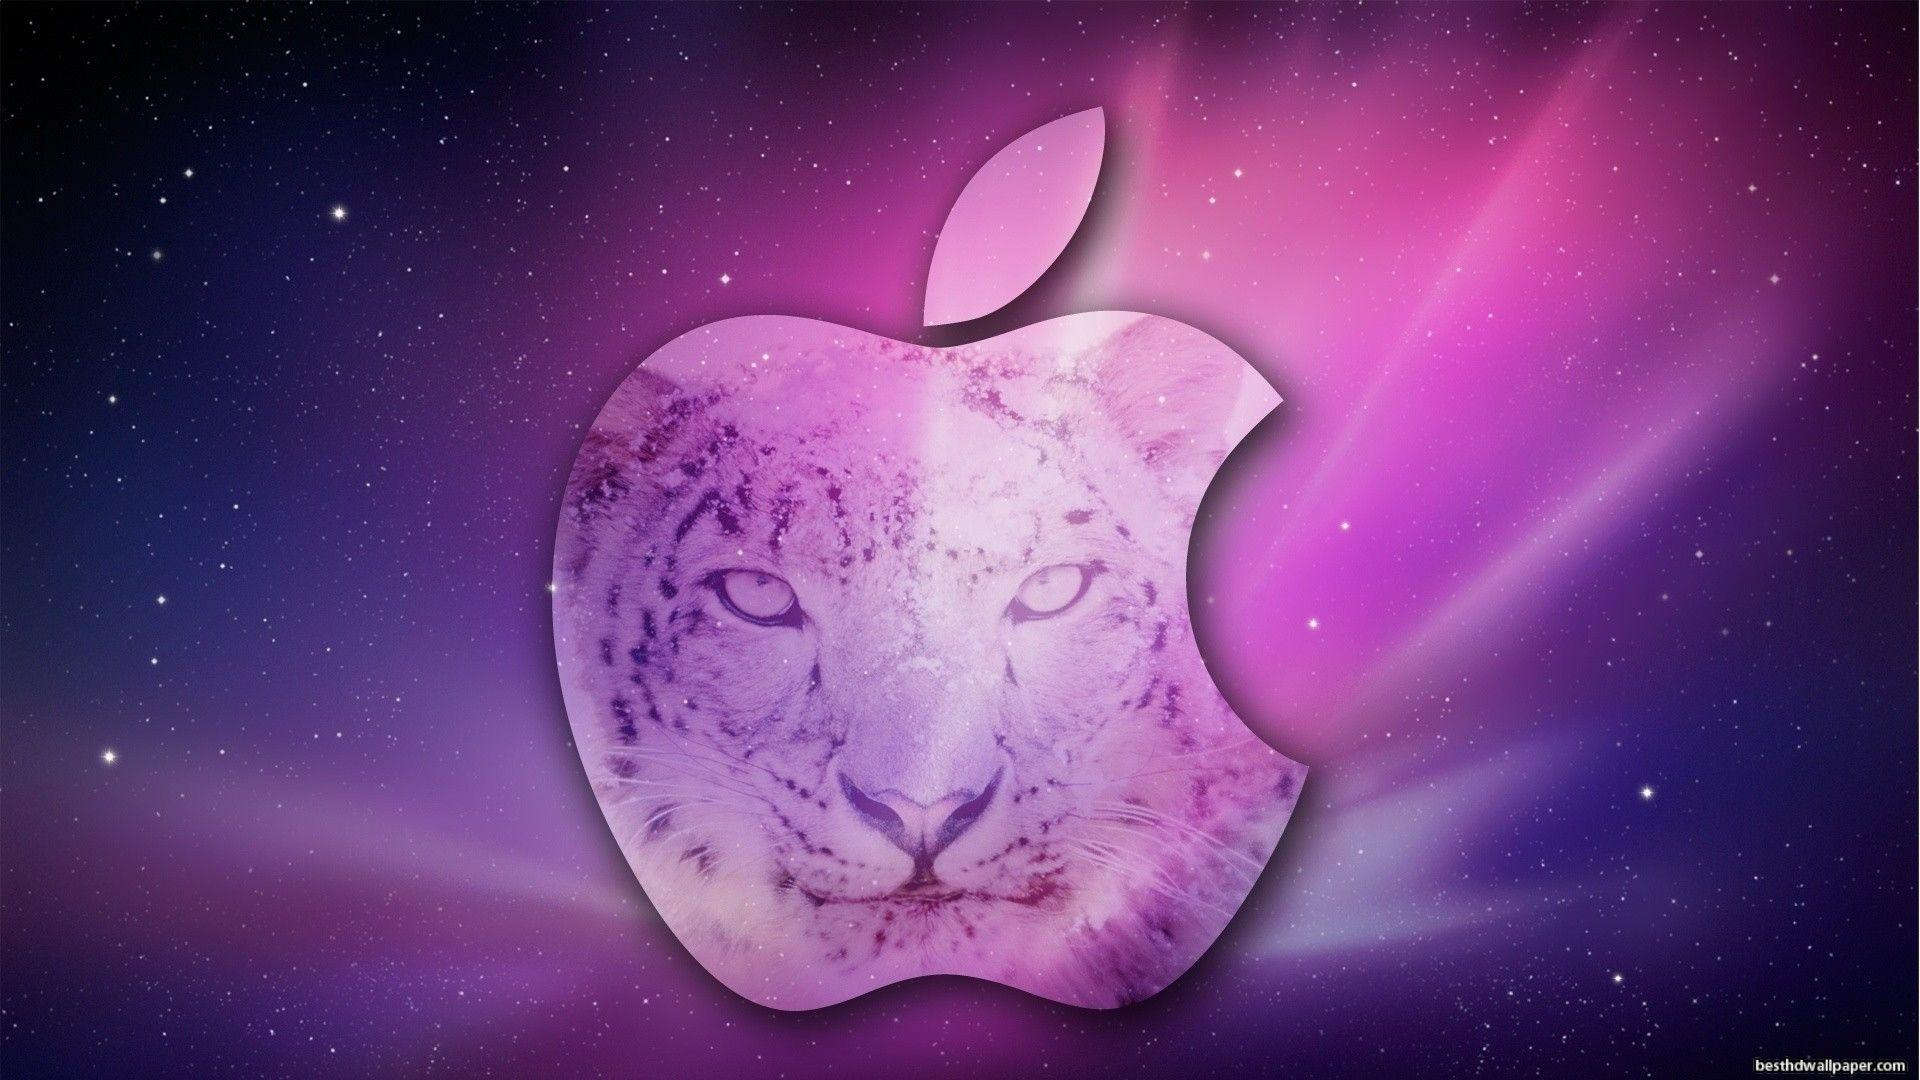 Wallpapers For > Apple Logo Wallpapers Hd 1080p For Iphone